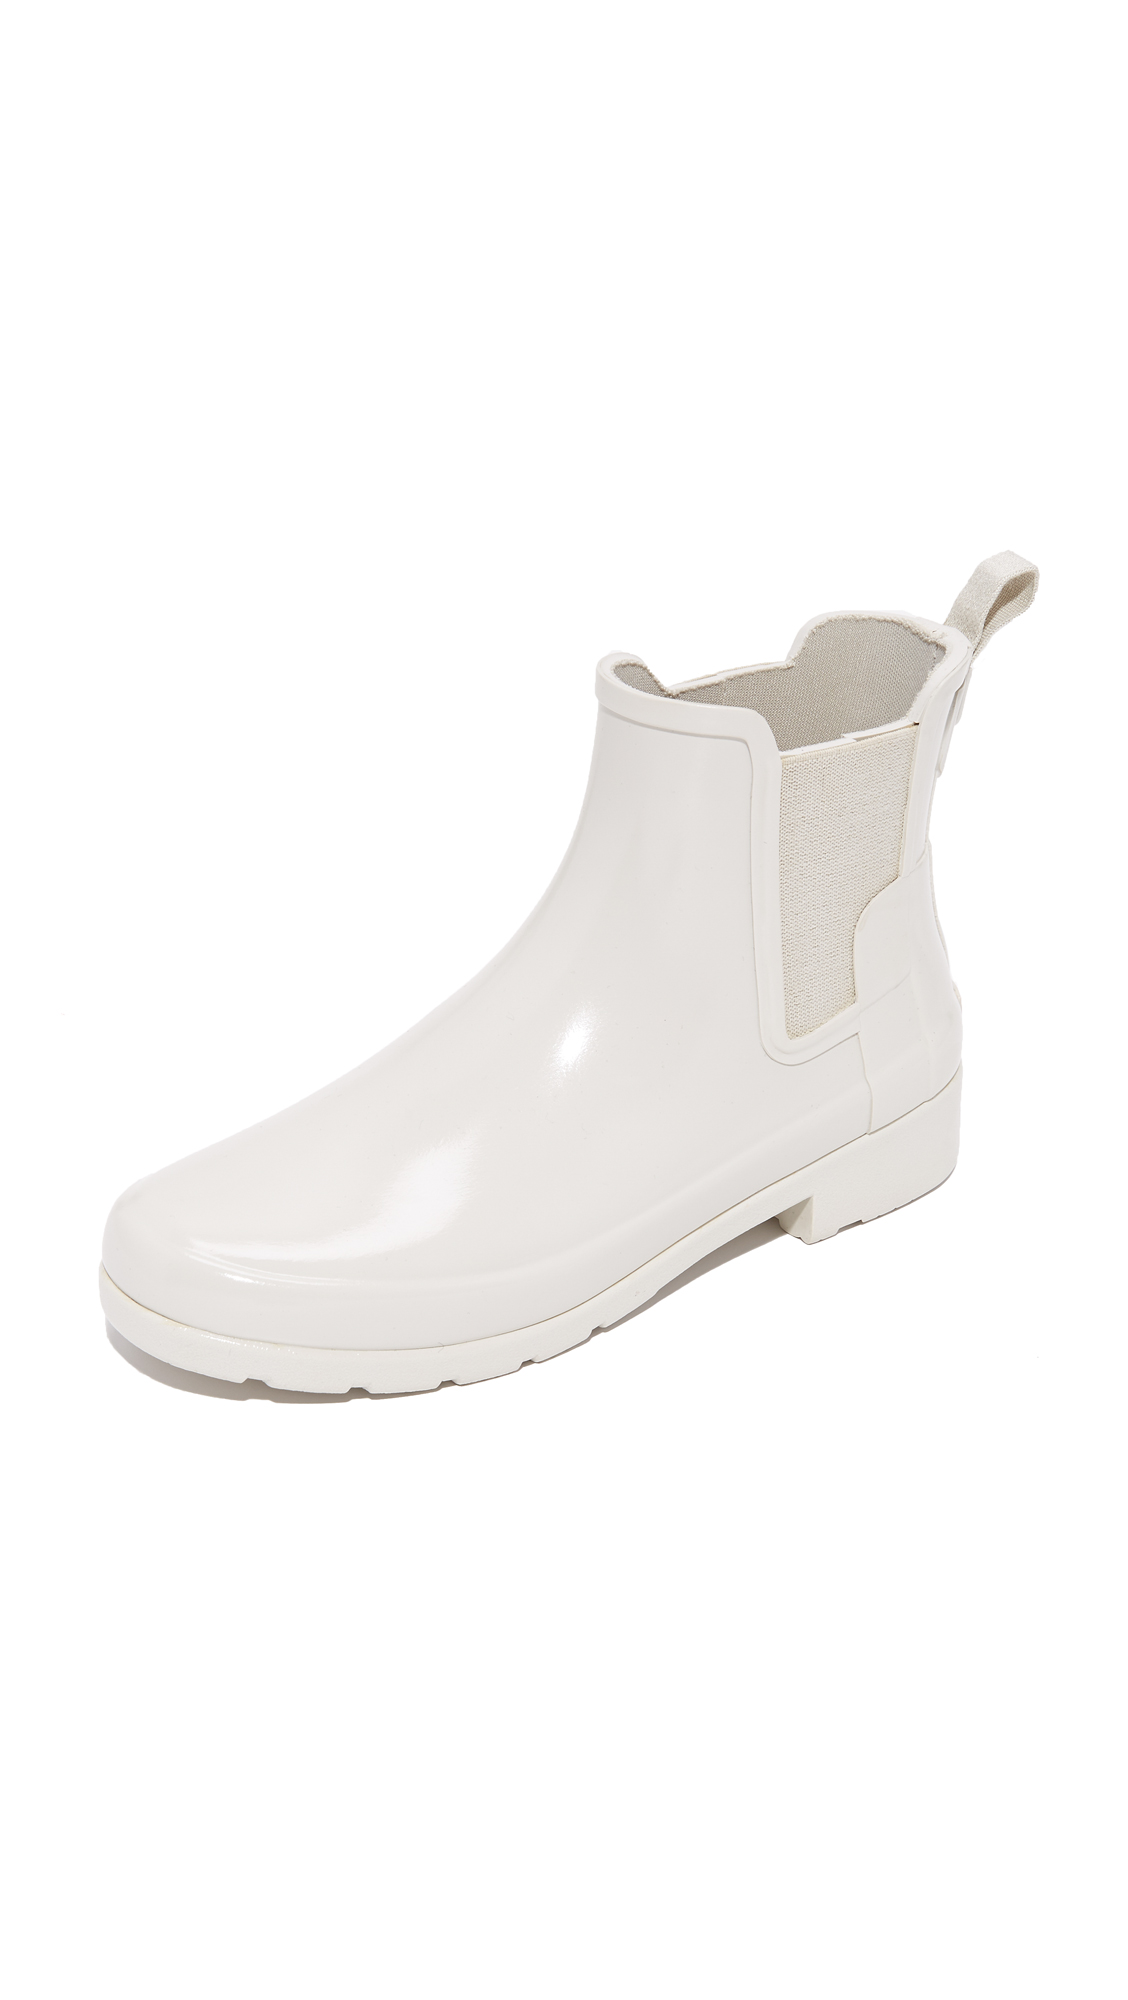 Photo of Hunter Boots Original Refined Chelsea Booties Parchment - Hunter Boots online